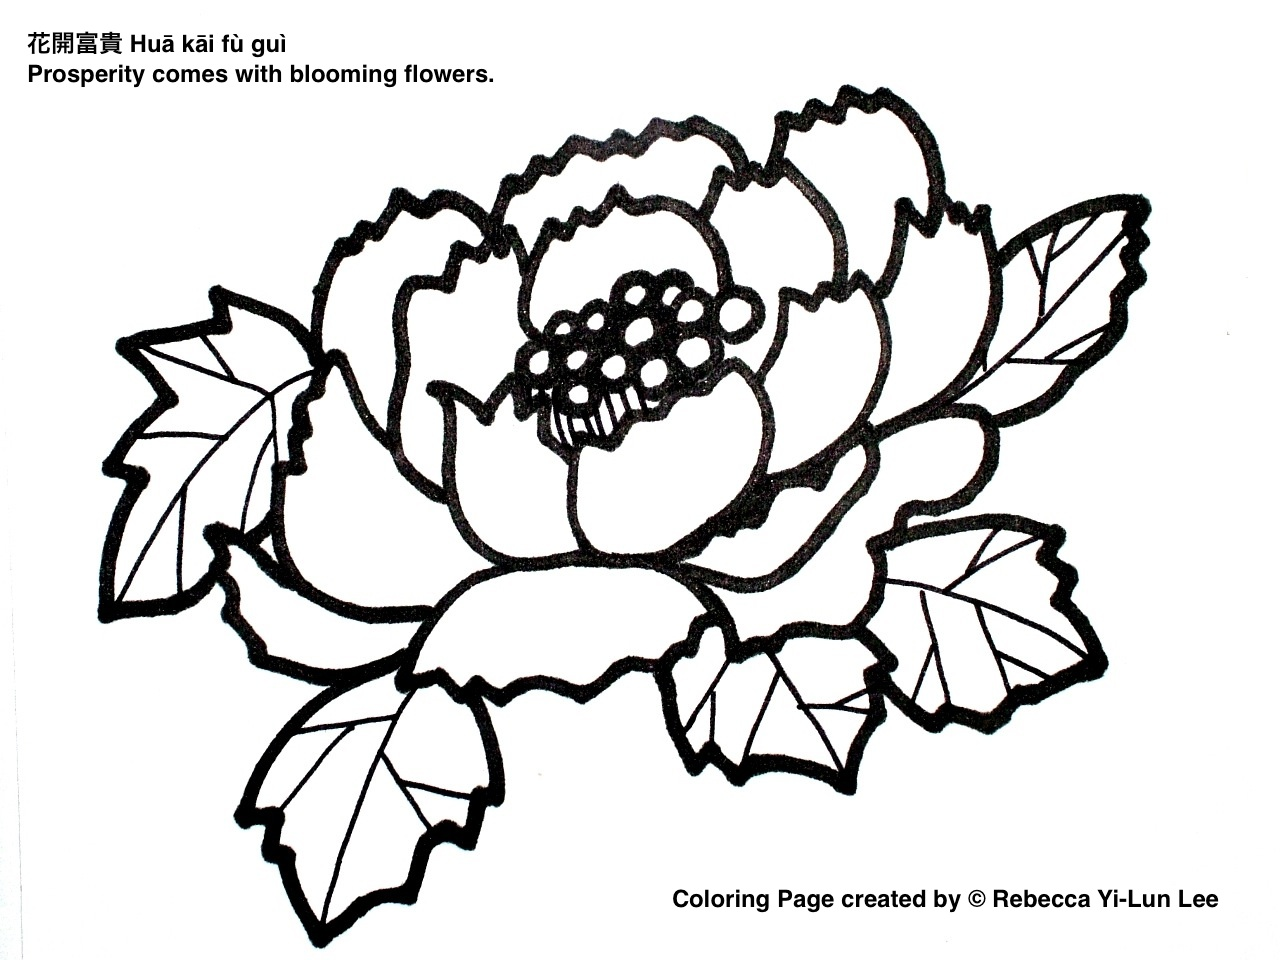 1280x960 Miss Panda Chinese New Year Coloring Page Prosperity With